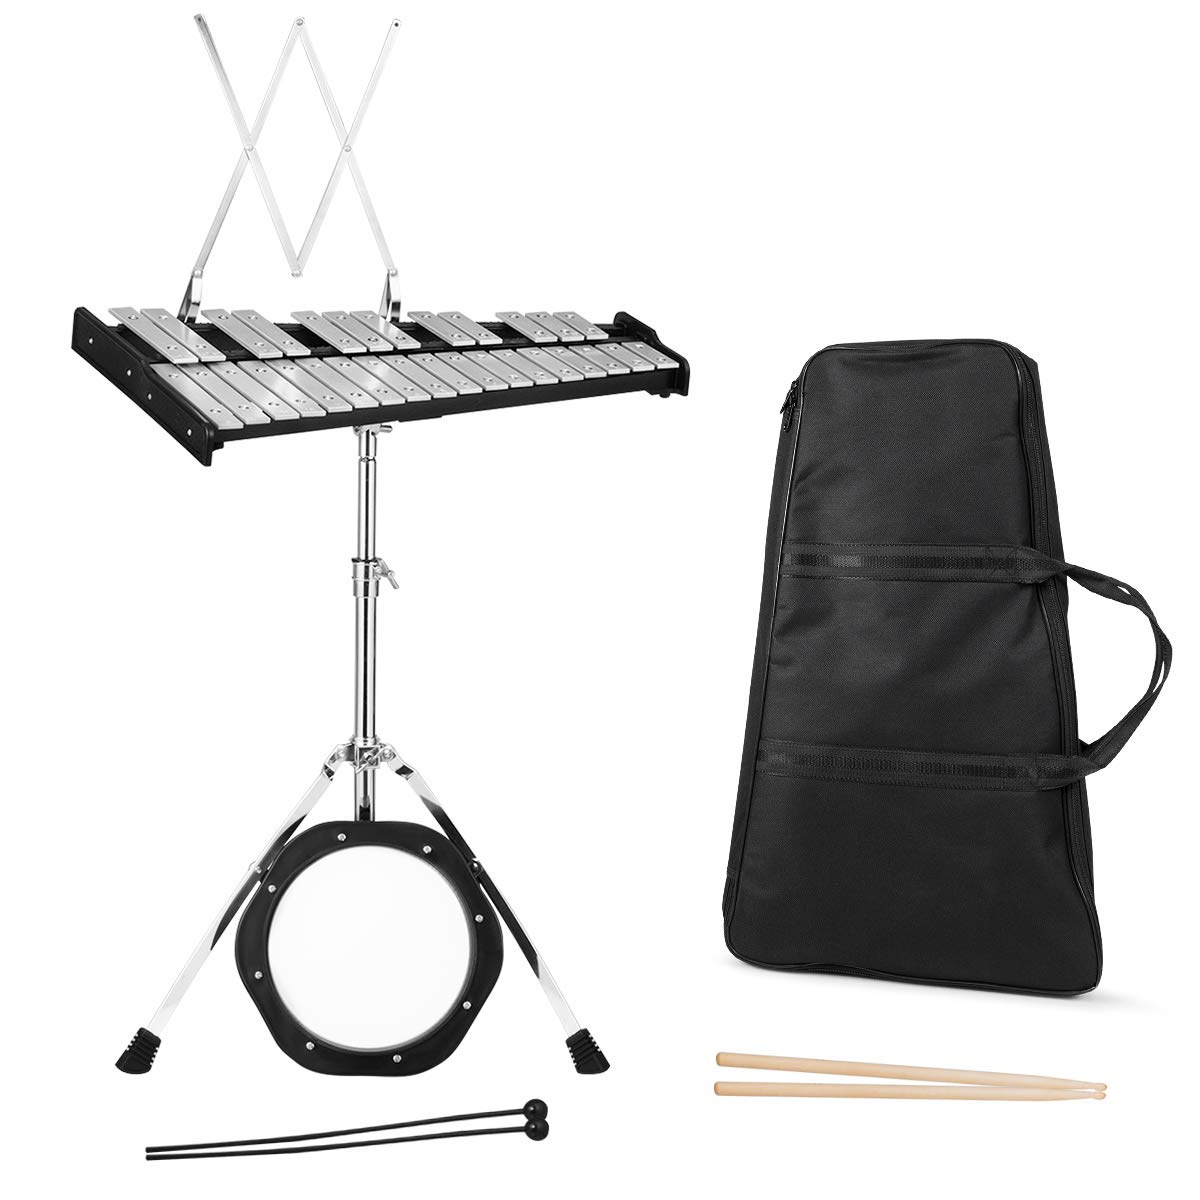 Giantex Percussion Glockenspiel Bell Kit 30 Notes, with Electroplated Adjustable Height Frame, Music Stand, an 8'' Practice Pad, and a Pair of Bell Mallets & Wooden Drumsticks, Carrying Bag by Giantex